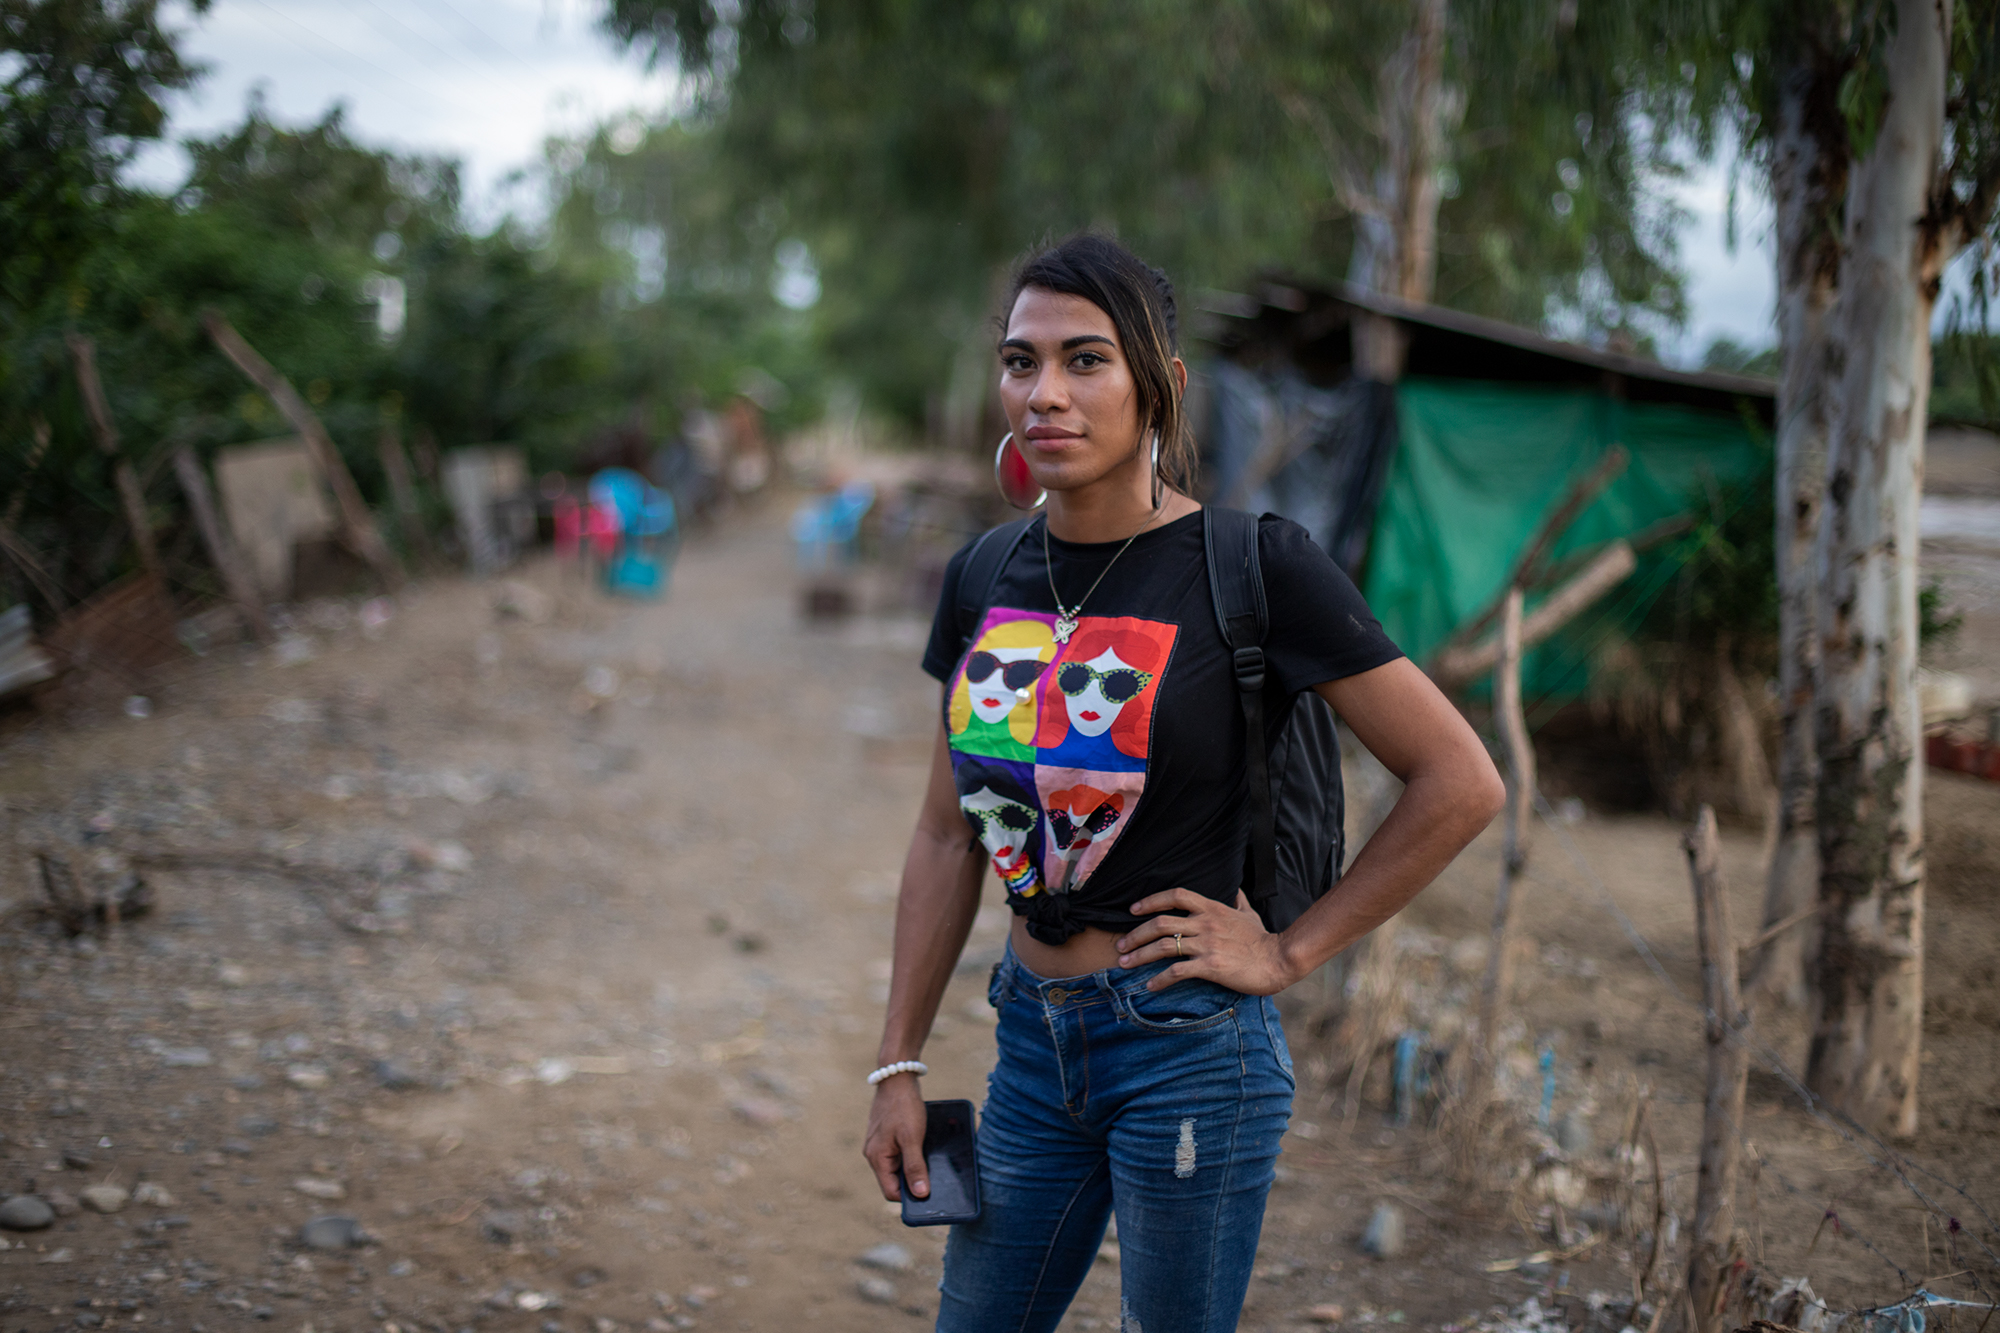 Roxy is 25 years old. She was born and raised in Chamelecón. Before the flooding provoked by the two tropical storms, Roxy was selling merchandise; this, and a monthly allowance from a brother in the United States, helped her survive.  San Pedro Sula, Nov. 20, 2020. Photo: Martín Cálix.